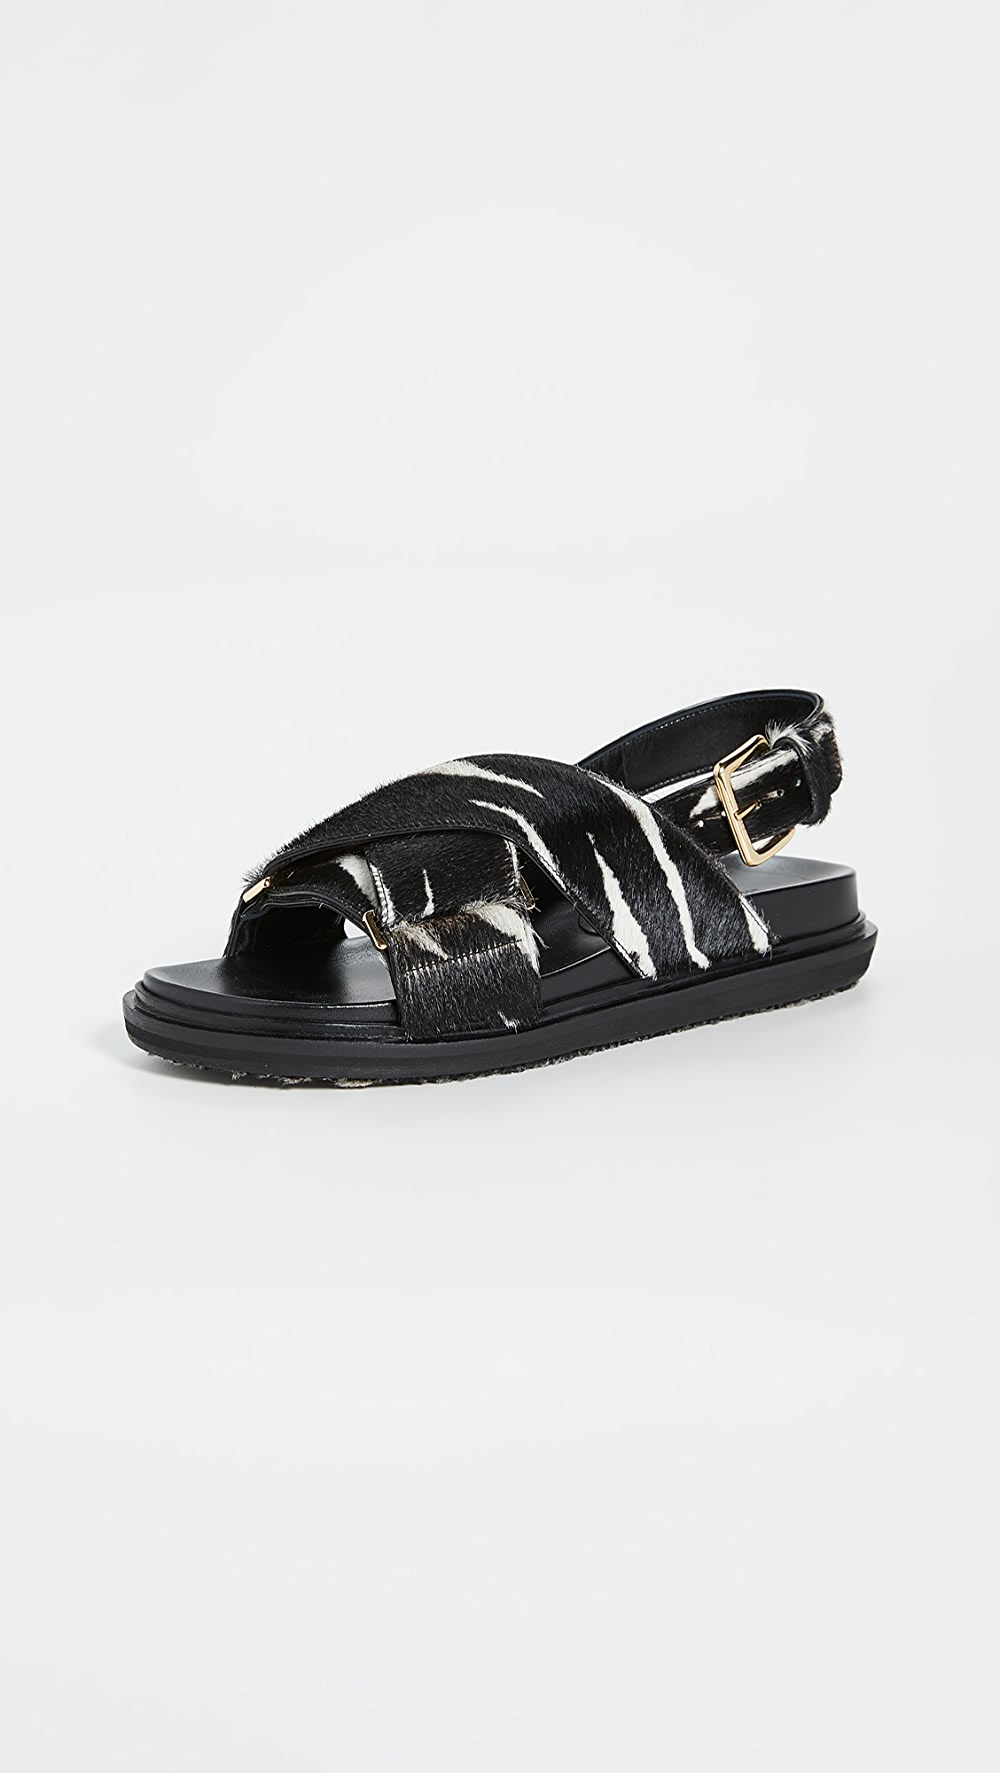 Able Marni - Animal Print Crisscross Sandals Limpid In Sight